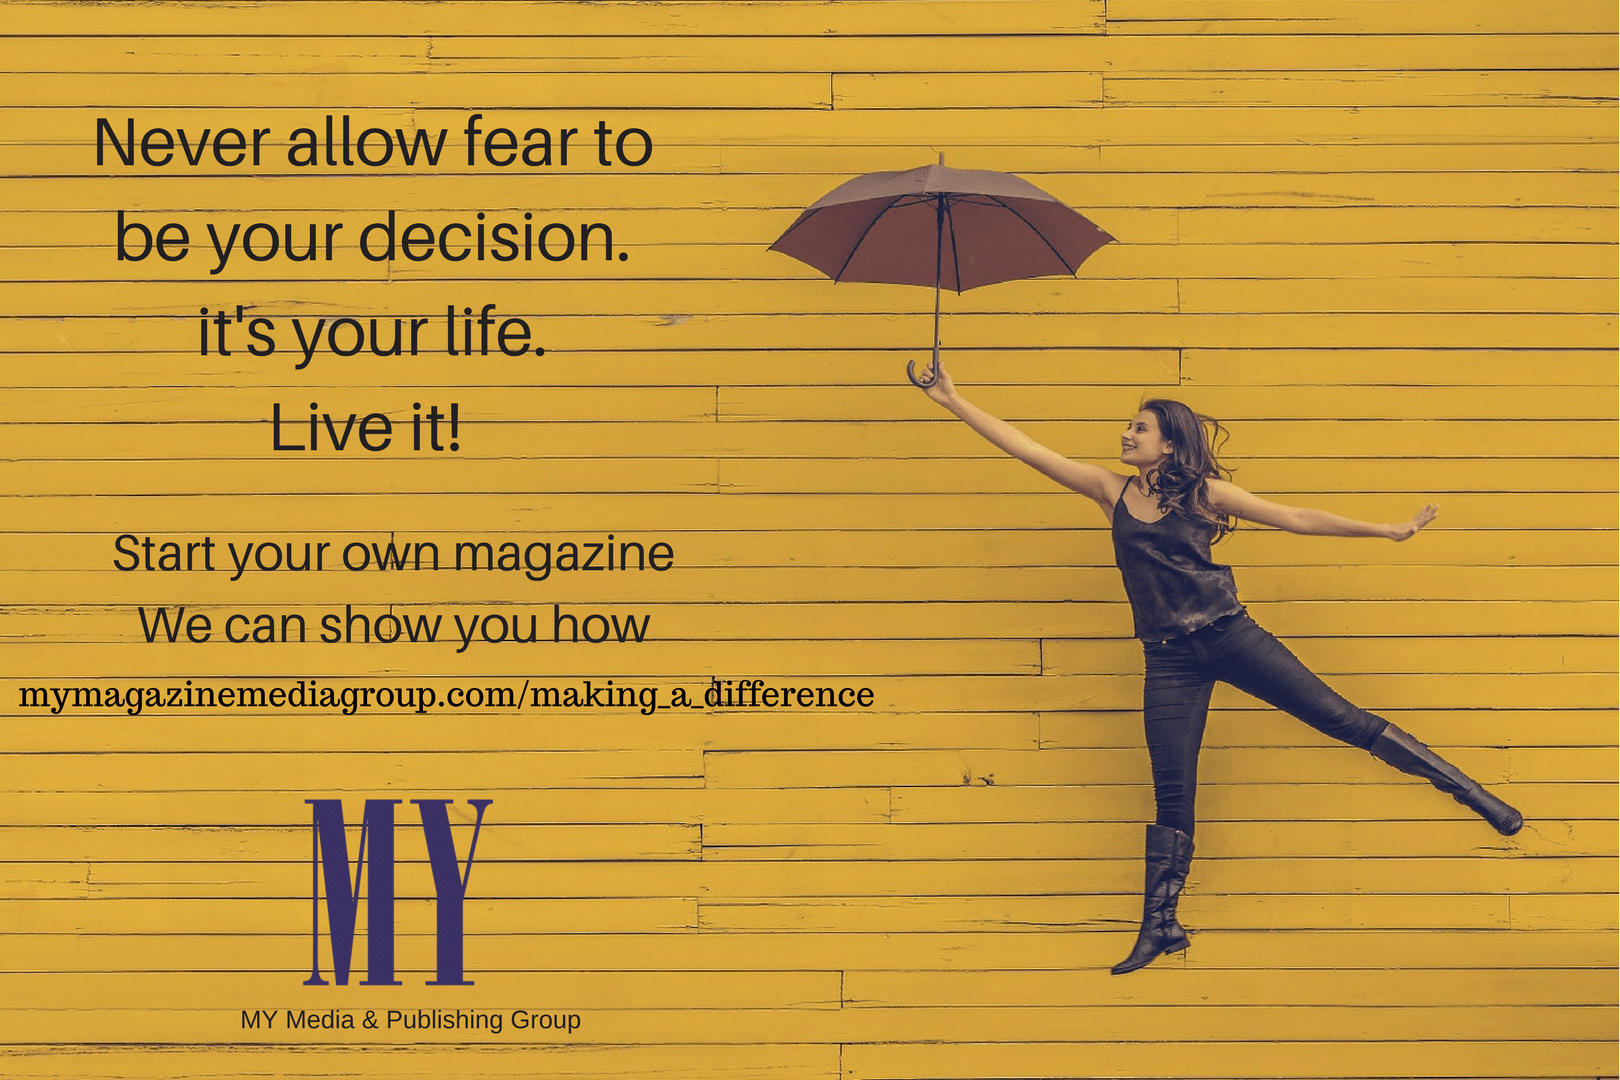 mymagazinemediagroup.com/making_a_difference Never-allow-fear-